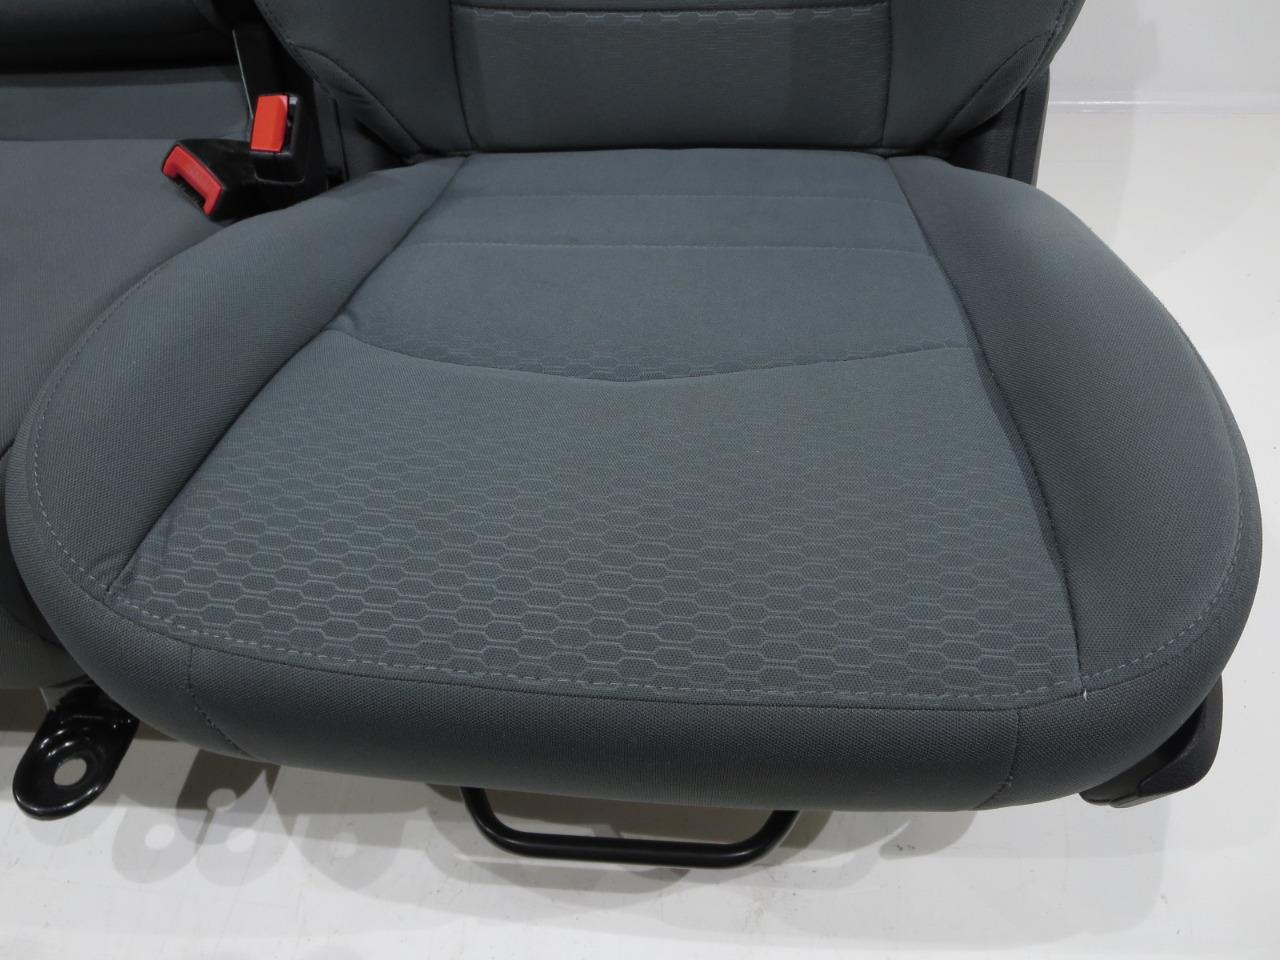 2009 Chevy Silverado For Sale >> Replacement Dodge Ram Oem Front Cloth Seats Gray 2009 2010 ...